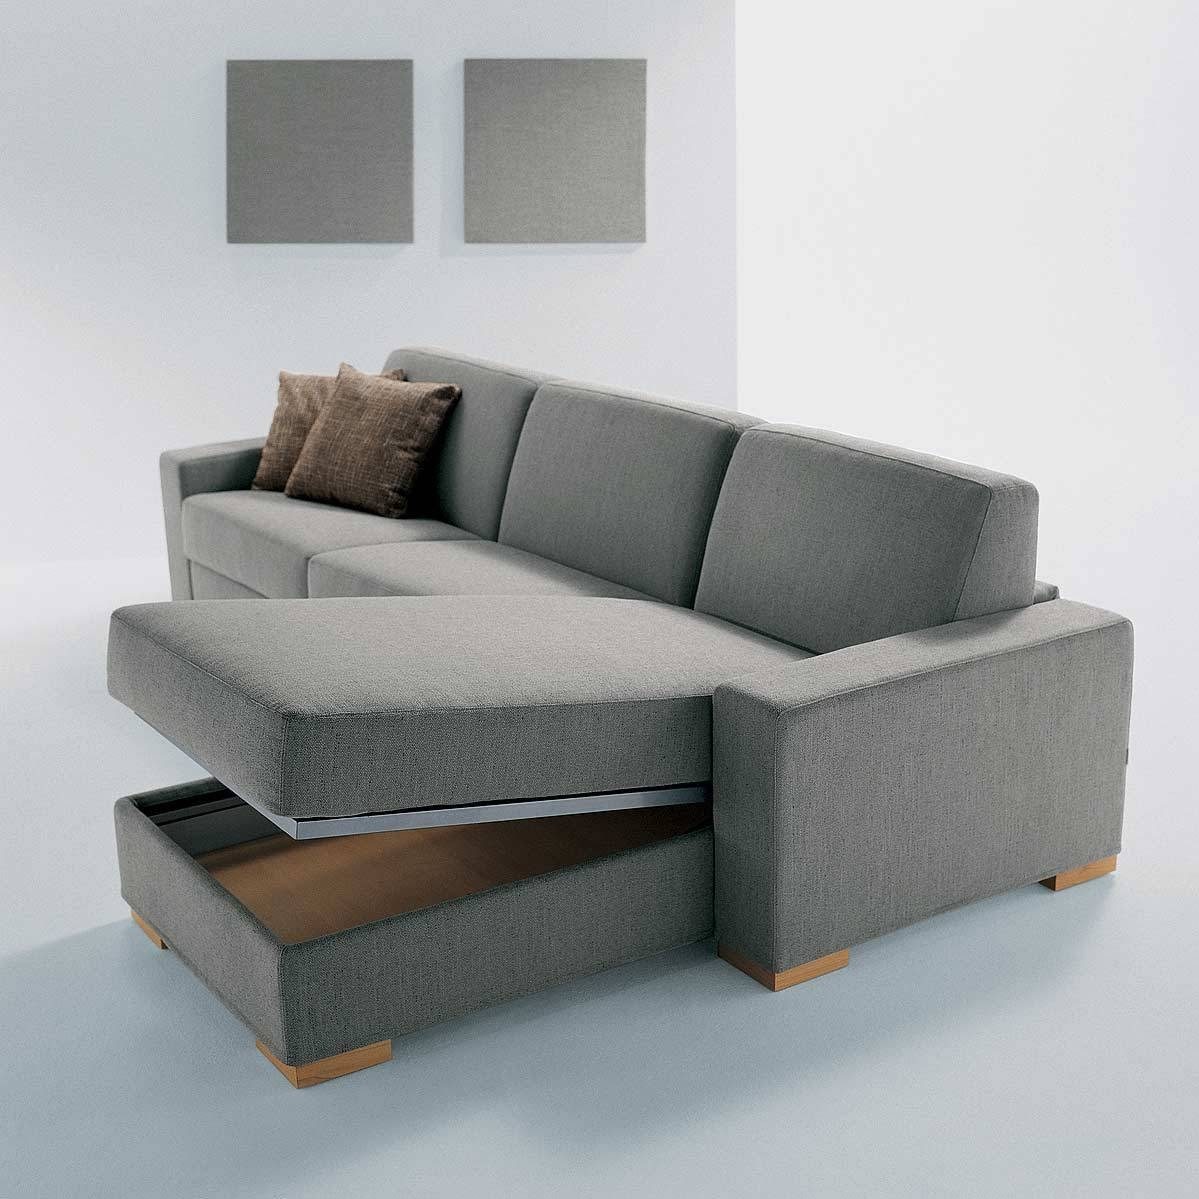 Chair Furniture Comfortable Convertible Sofa Bed Collections Black pertaining to Sofa Beds With Storages (Image 6 of 30)